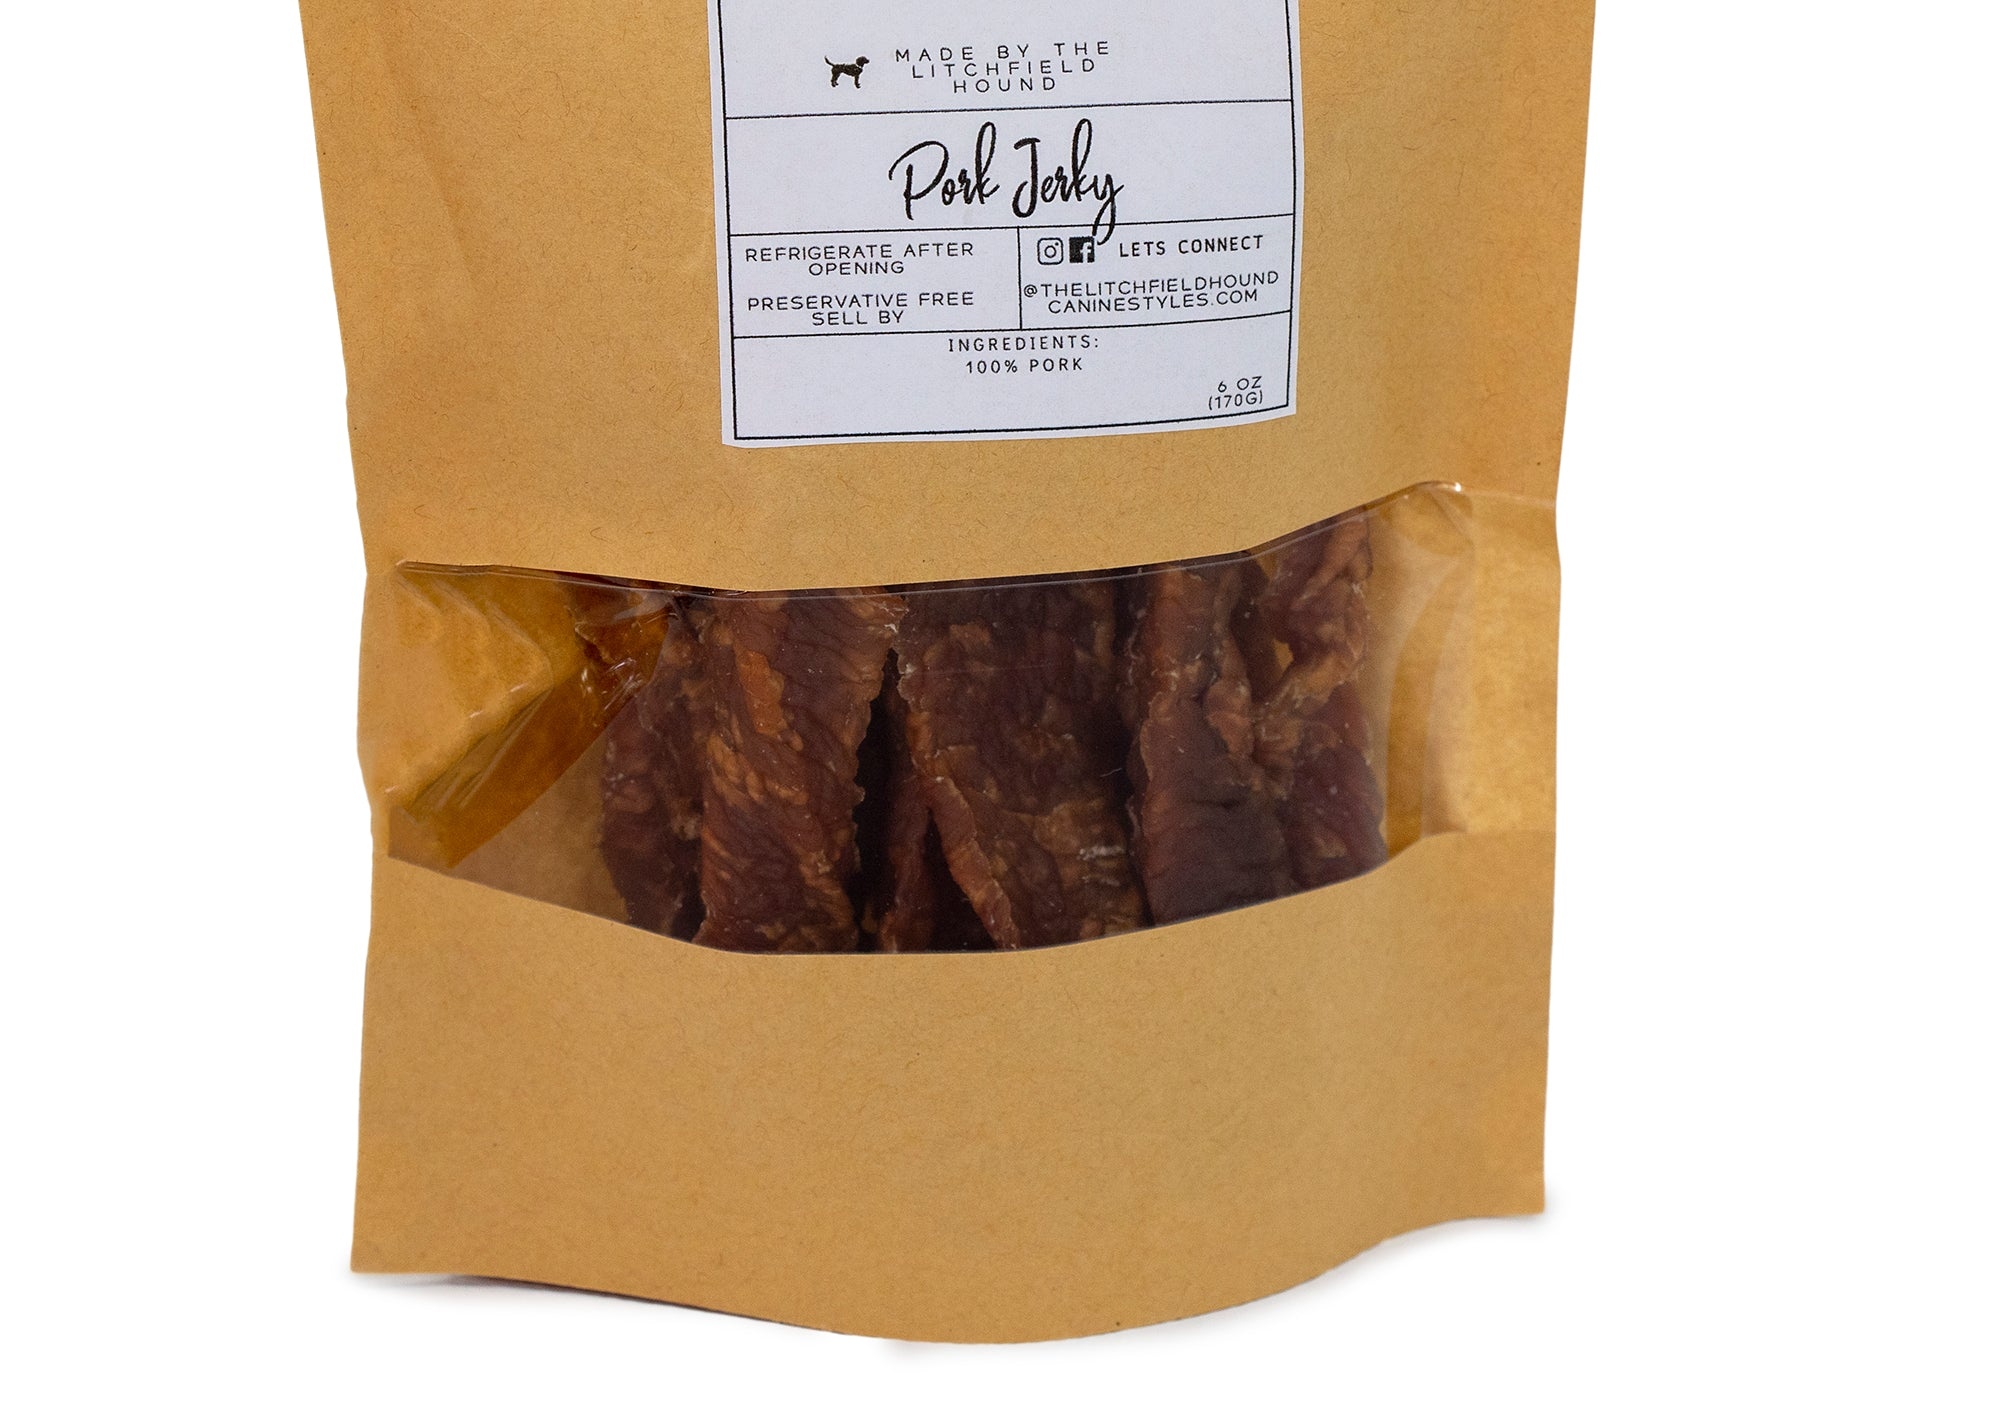 Canine Styles - Pork Jerky - Dog Treats